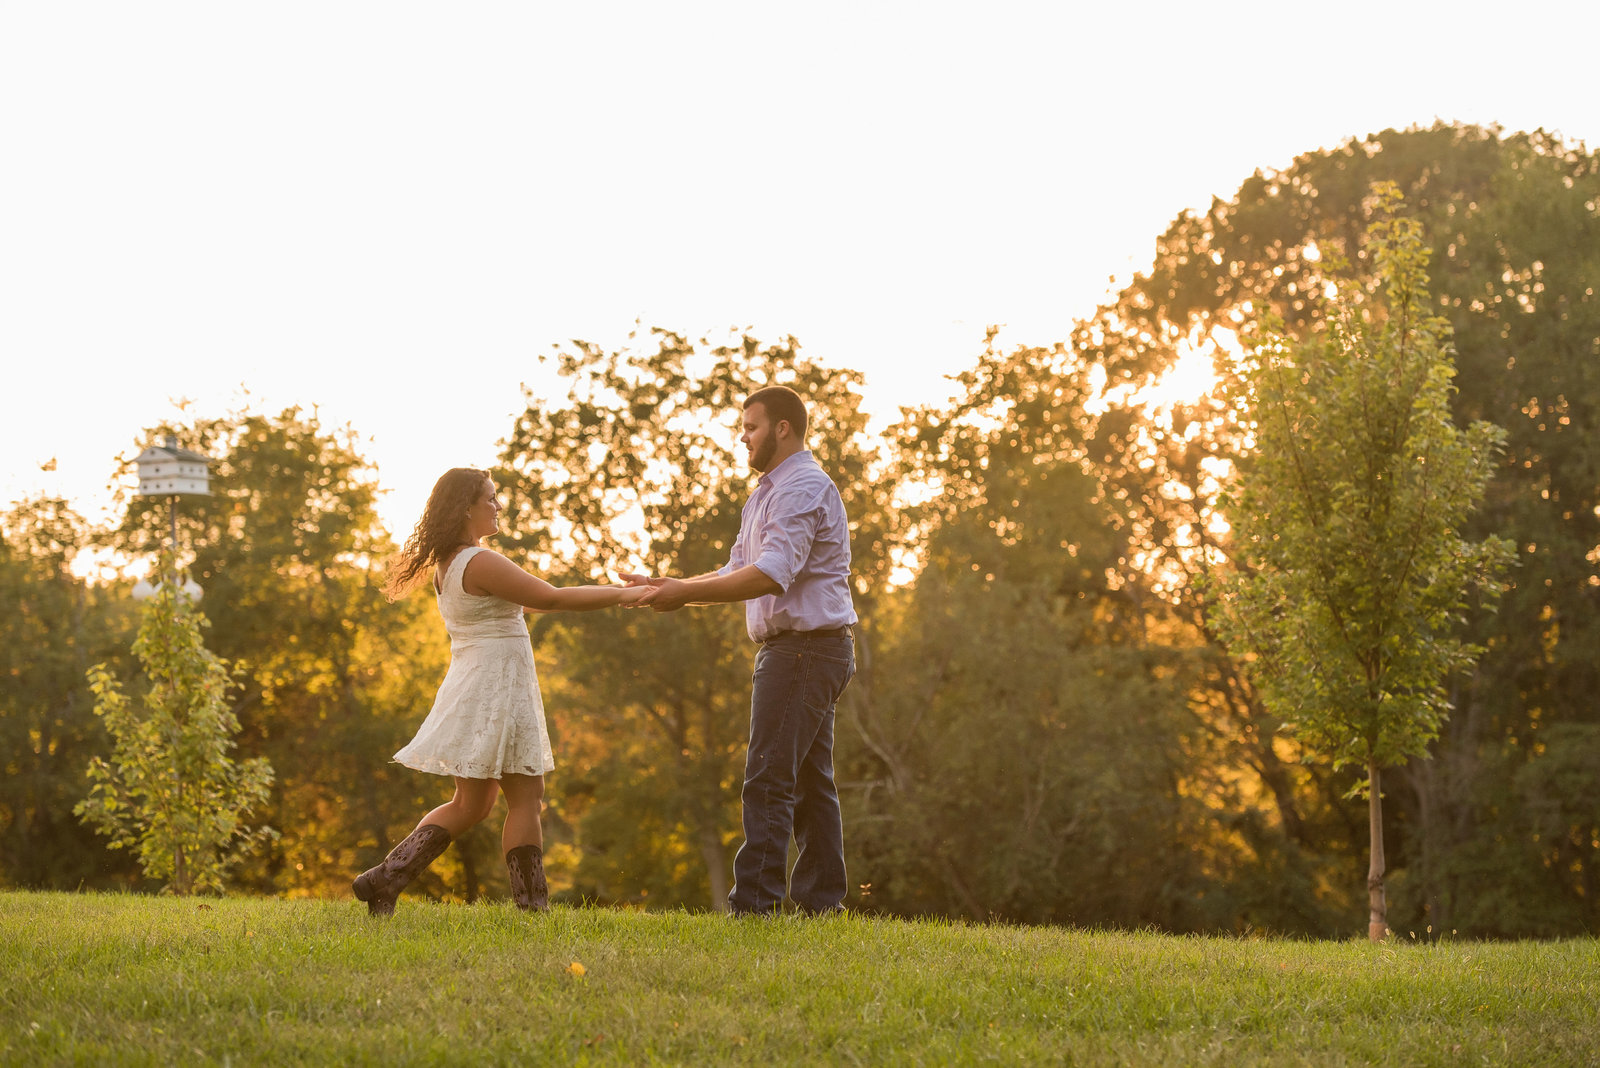 NJ_Rustic_Engagement_Photography156